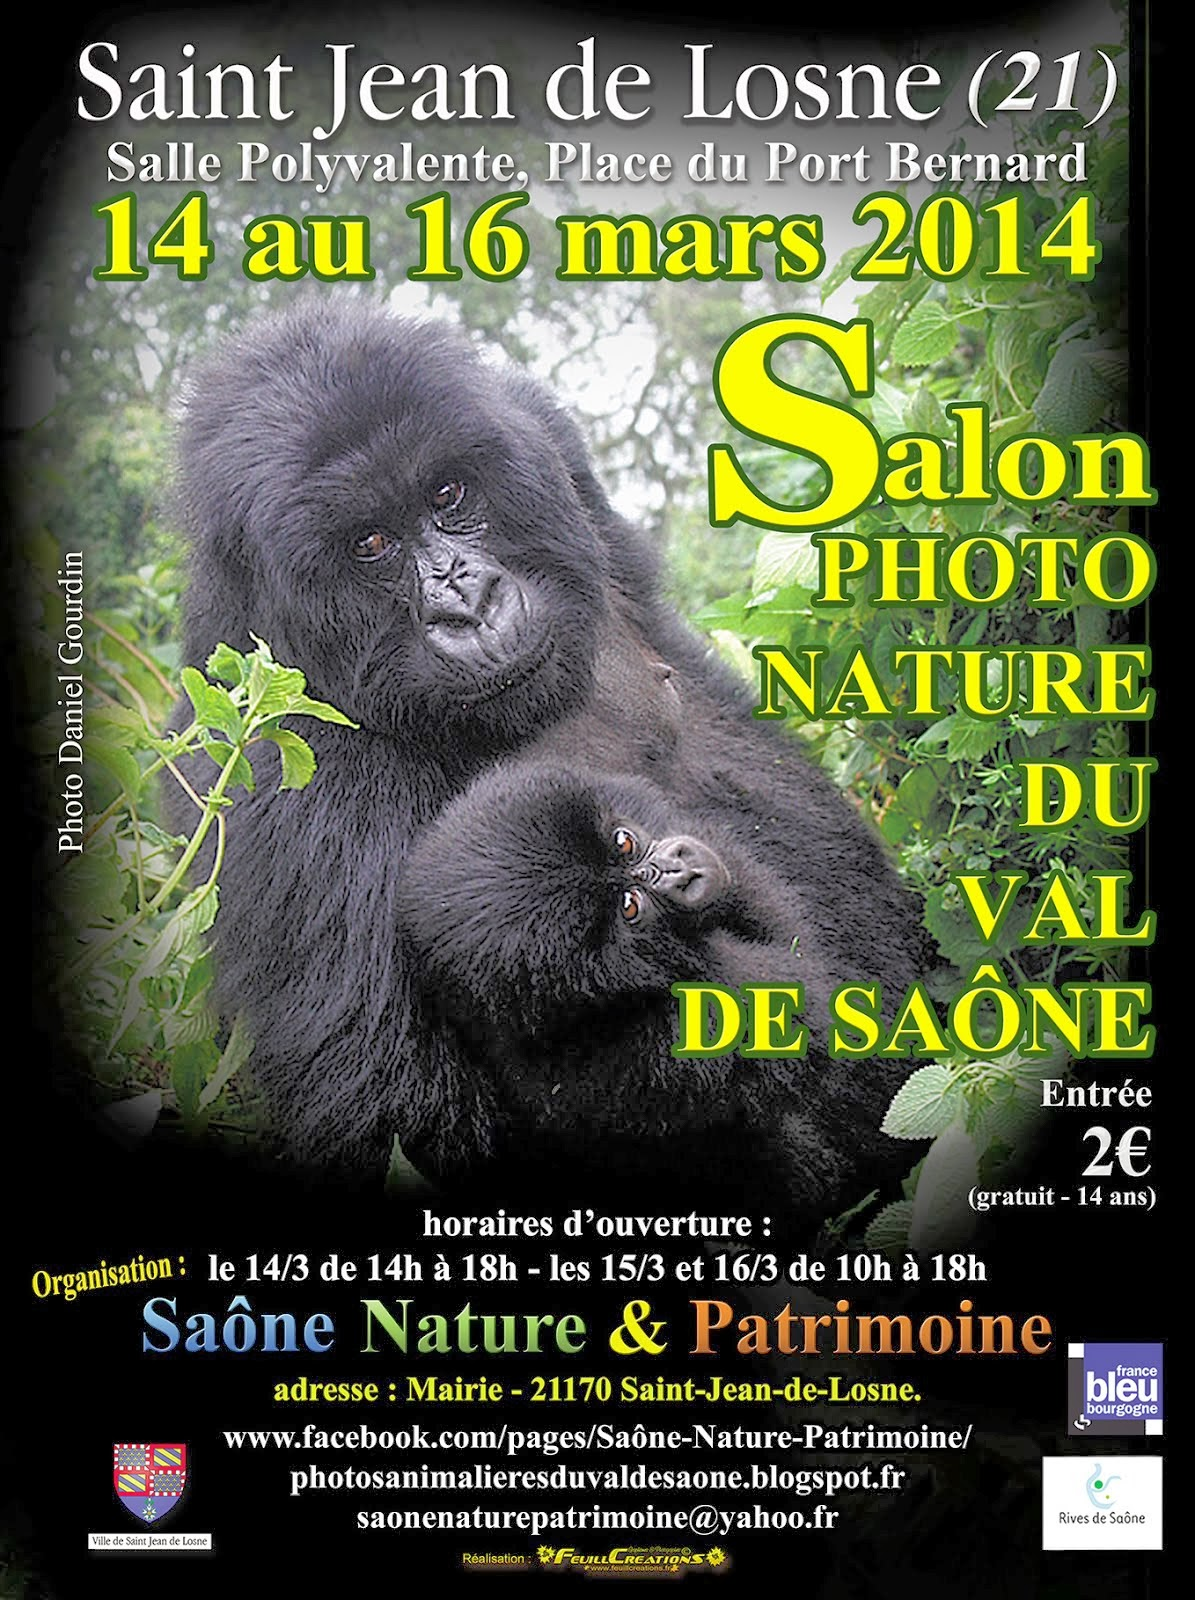 Le Salon Photo Nature